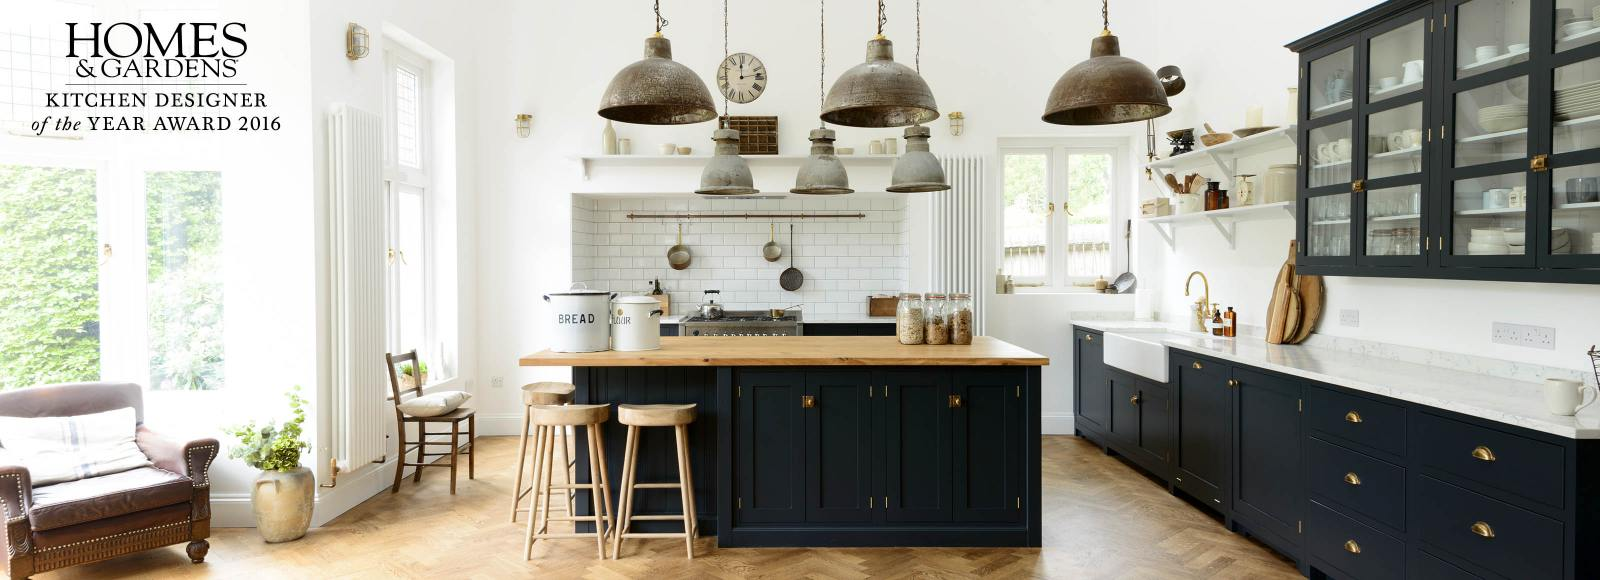 devol kitchens - simple furniture, beautifully made - kitchens